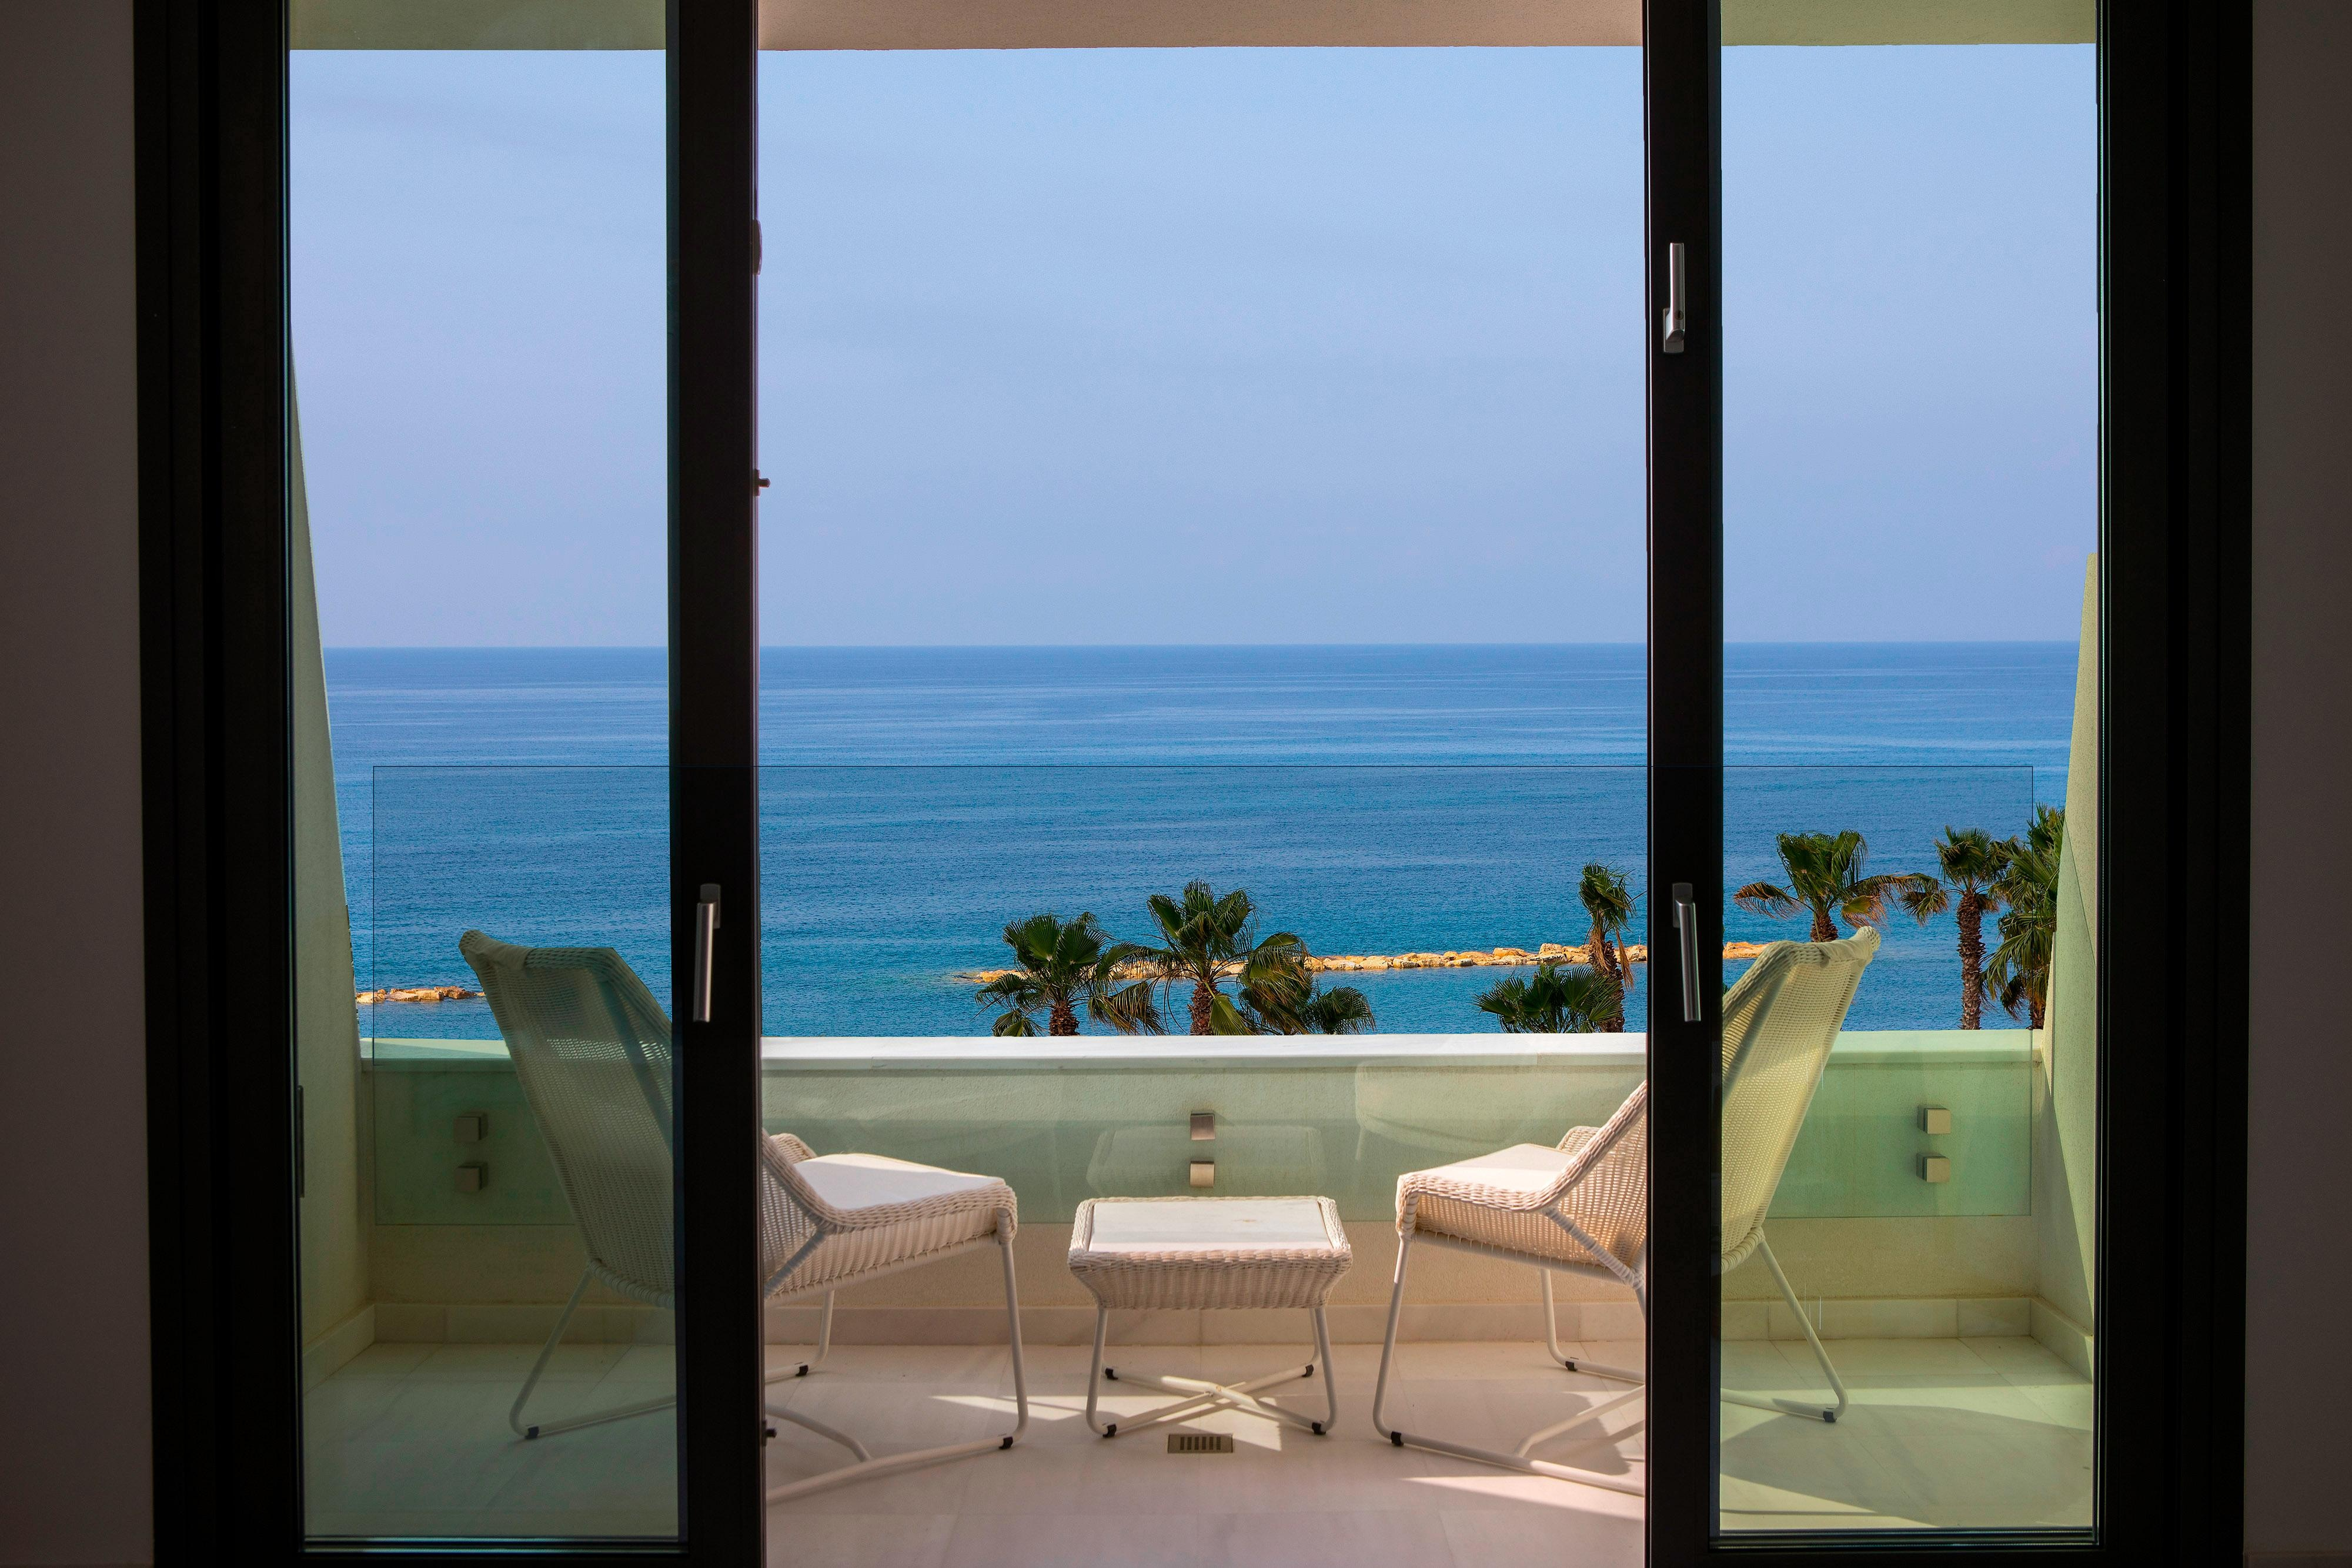 Guest Room Balcony with Sea View